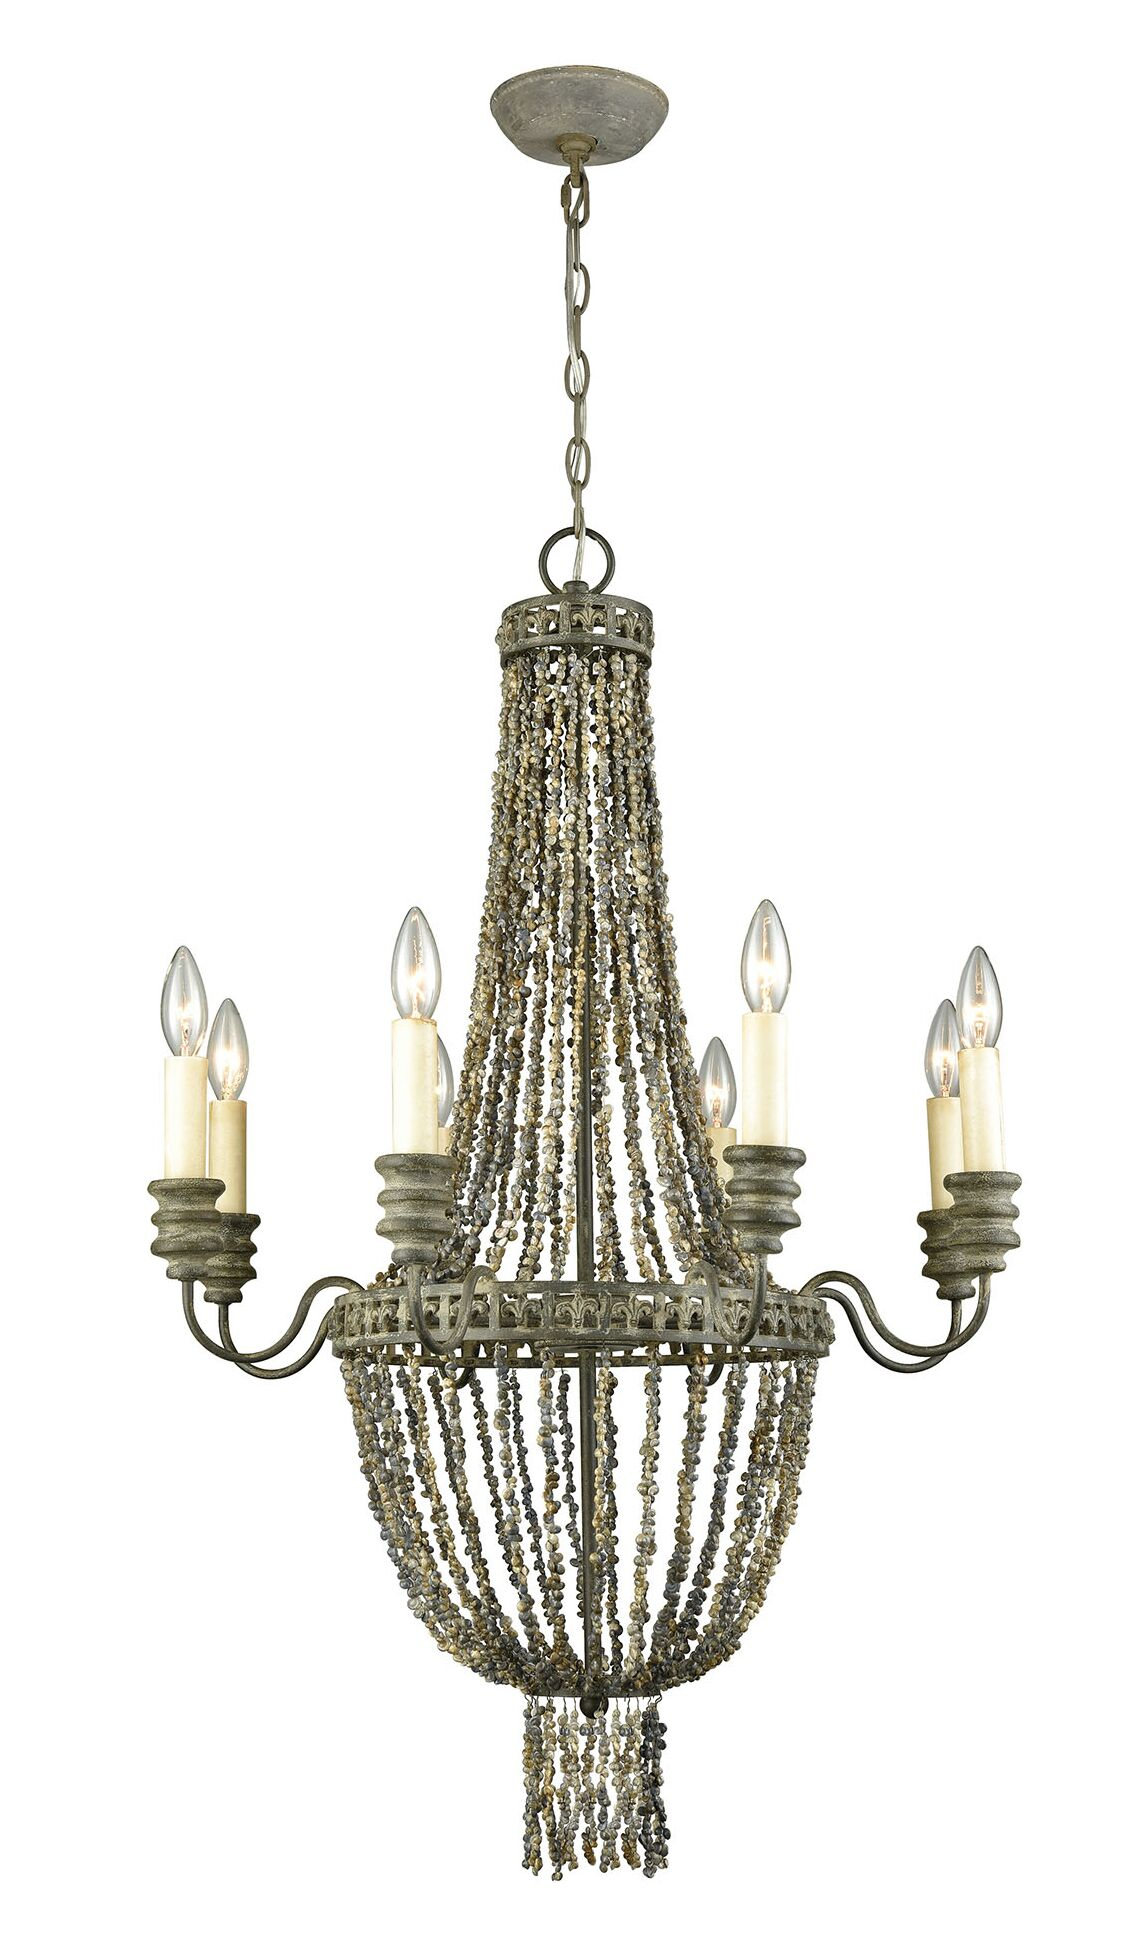 Iverson 8-Light Empire Chandelier